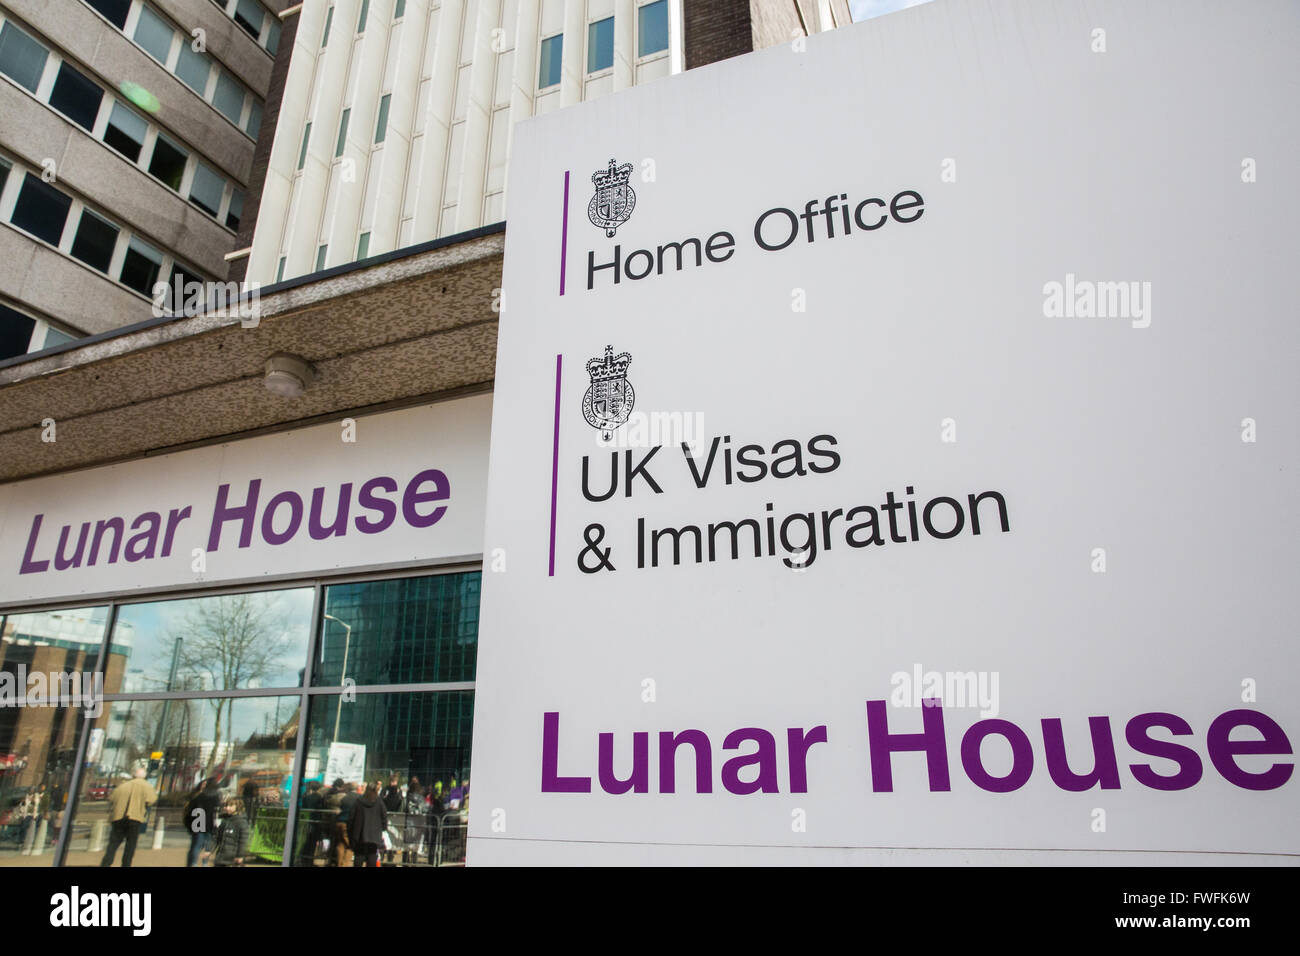 Croydon, UK. 5th April, 2016. The Home Office Uk Visas & Immigration Office at Lunar House in Croydon. Credit: - Stock Image